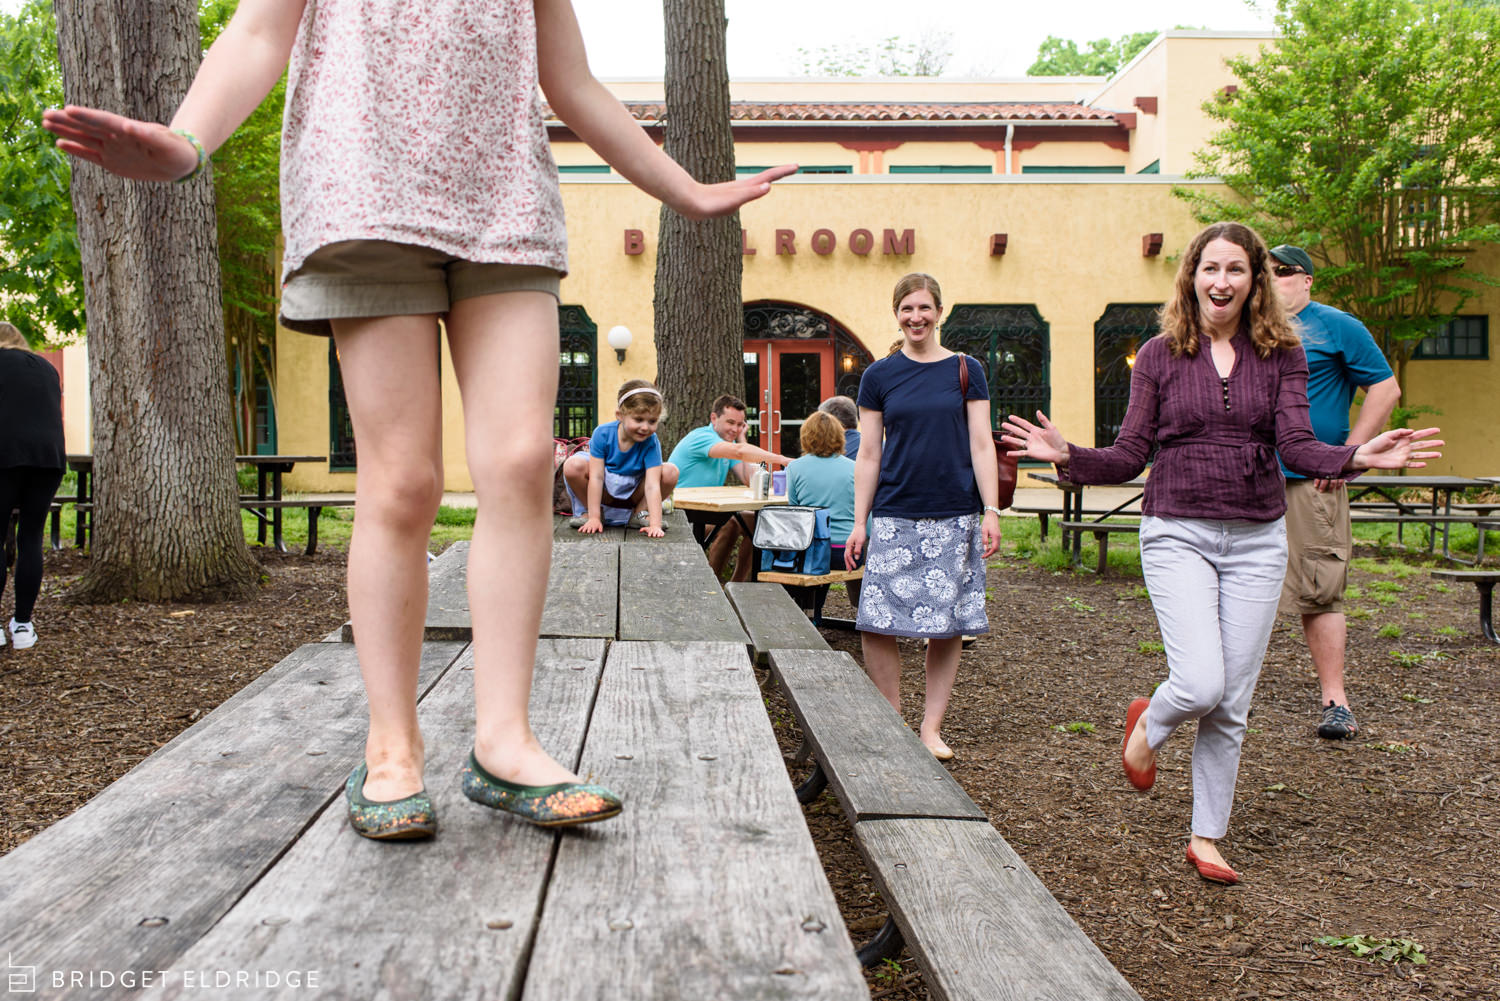 aunt watches her niece dance on a picnic table